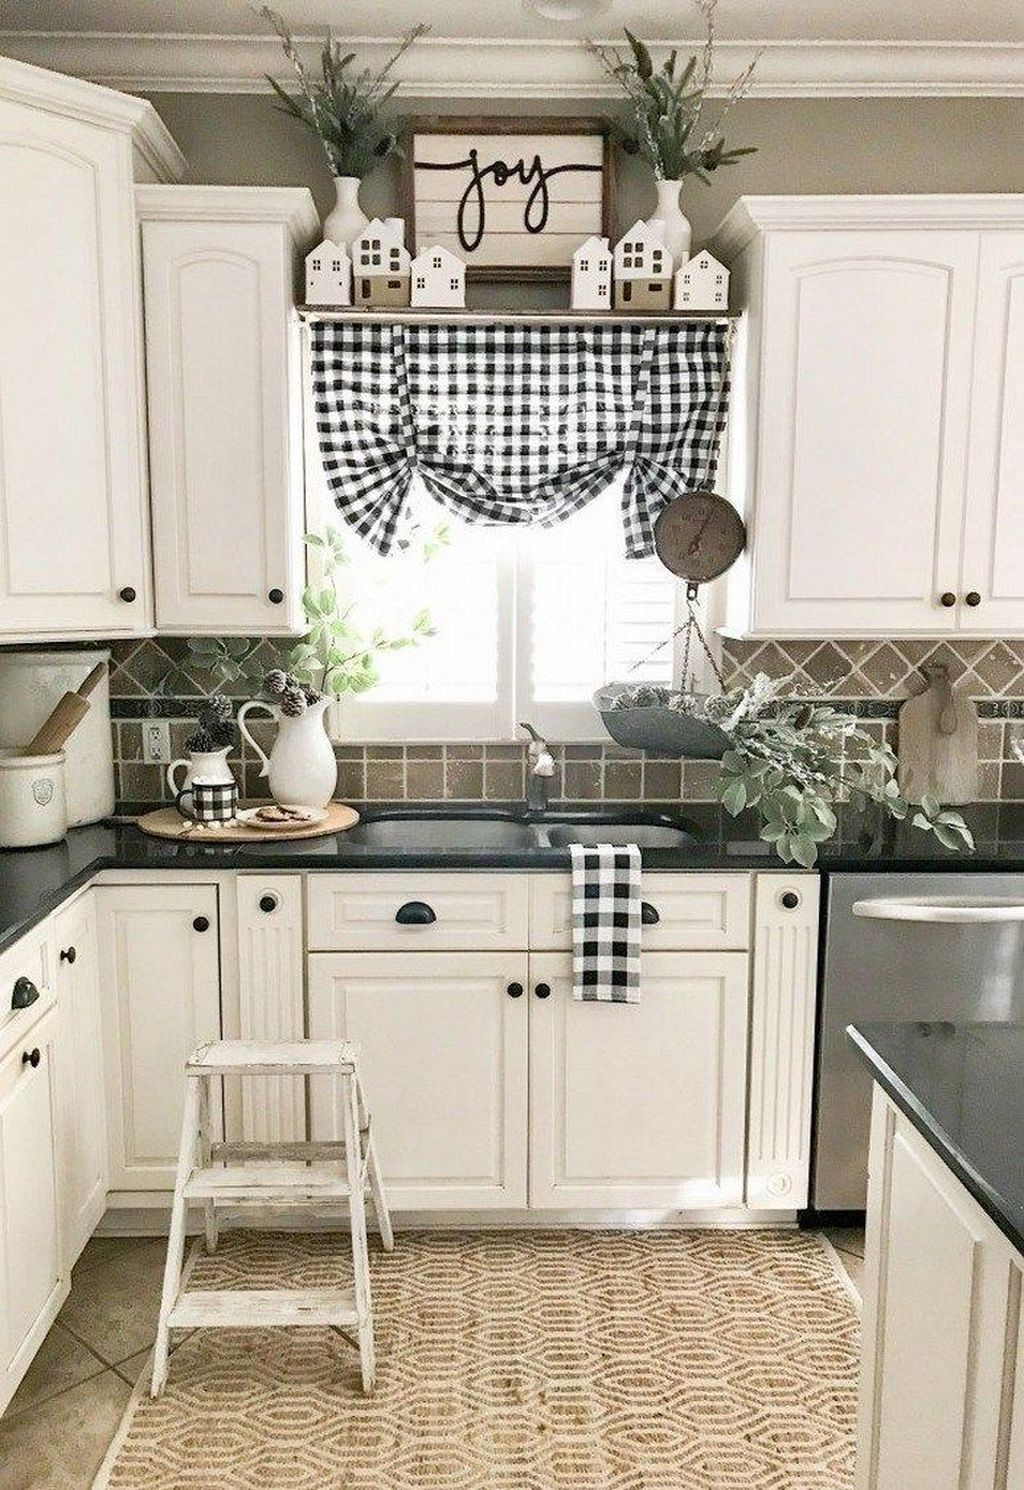 31 Stunning Farmhouse Kitchen Decor Ideas On A Budget Decoracion